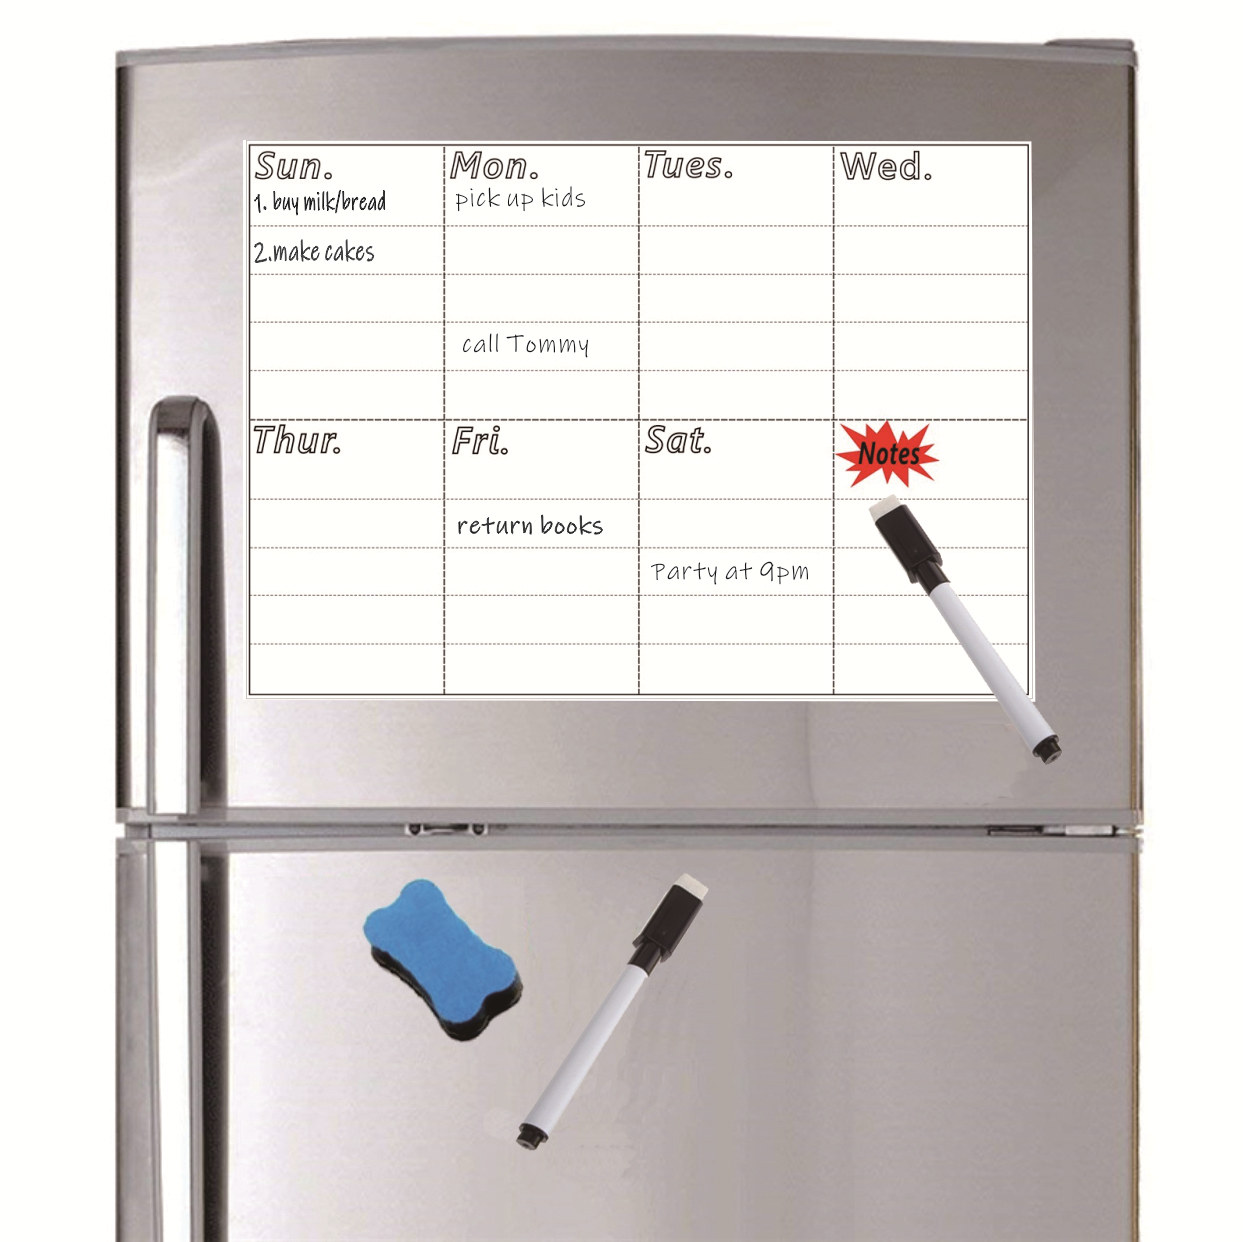 A4 Magnetic Menu Board For Fridge Sticker Weekly Planner Grocery To Do List Notepad Kitchen Refrigerator Magnet Whiteboard